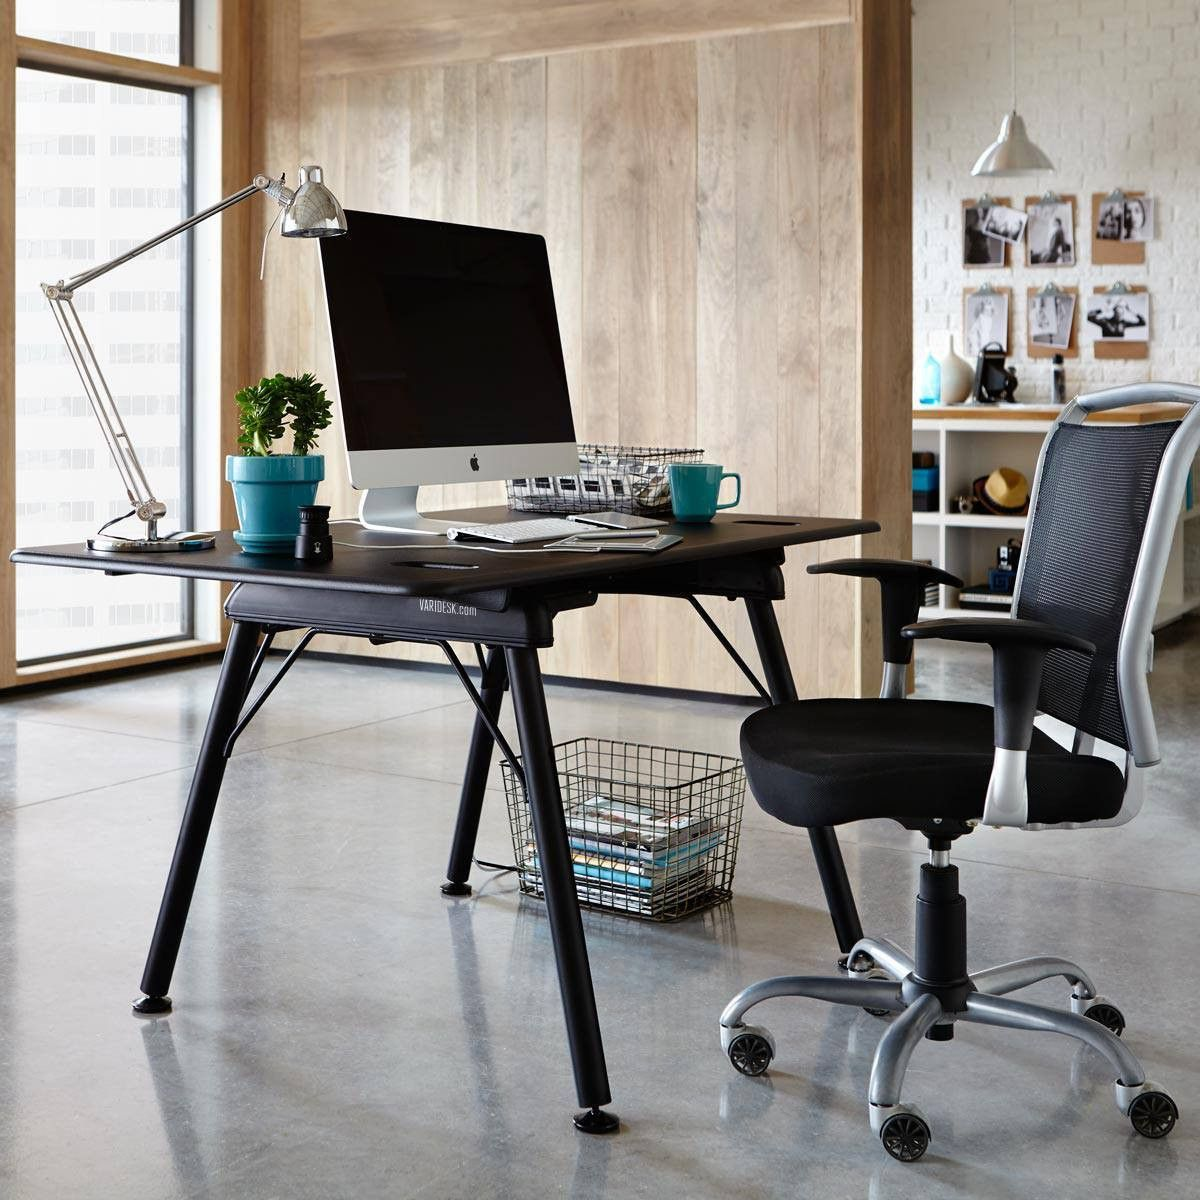 images and desks imac on desk apple best standing bedroom child office pinterest room ideas